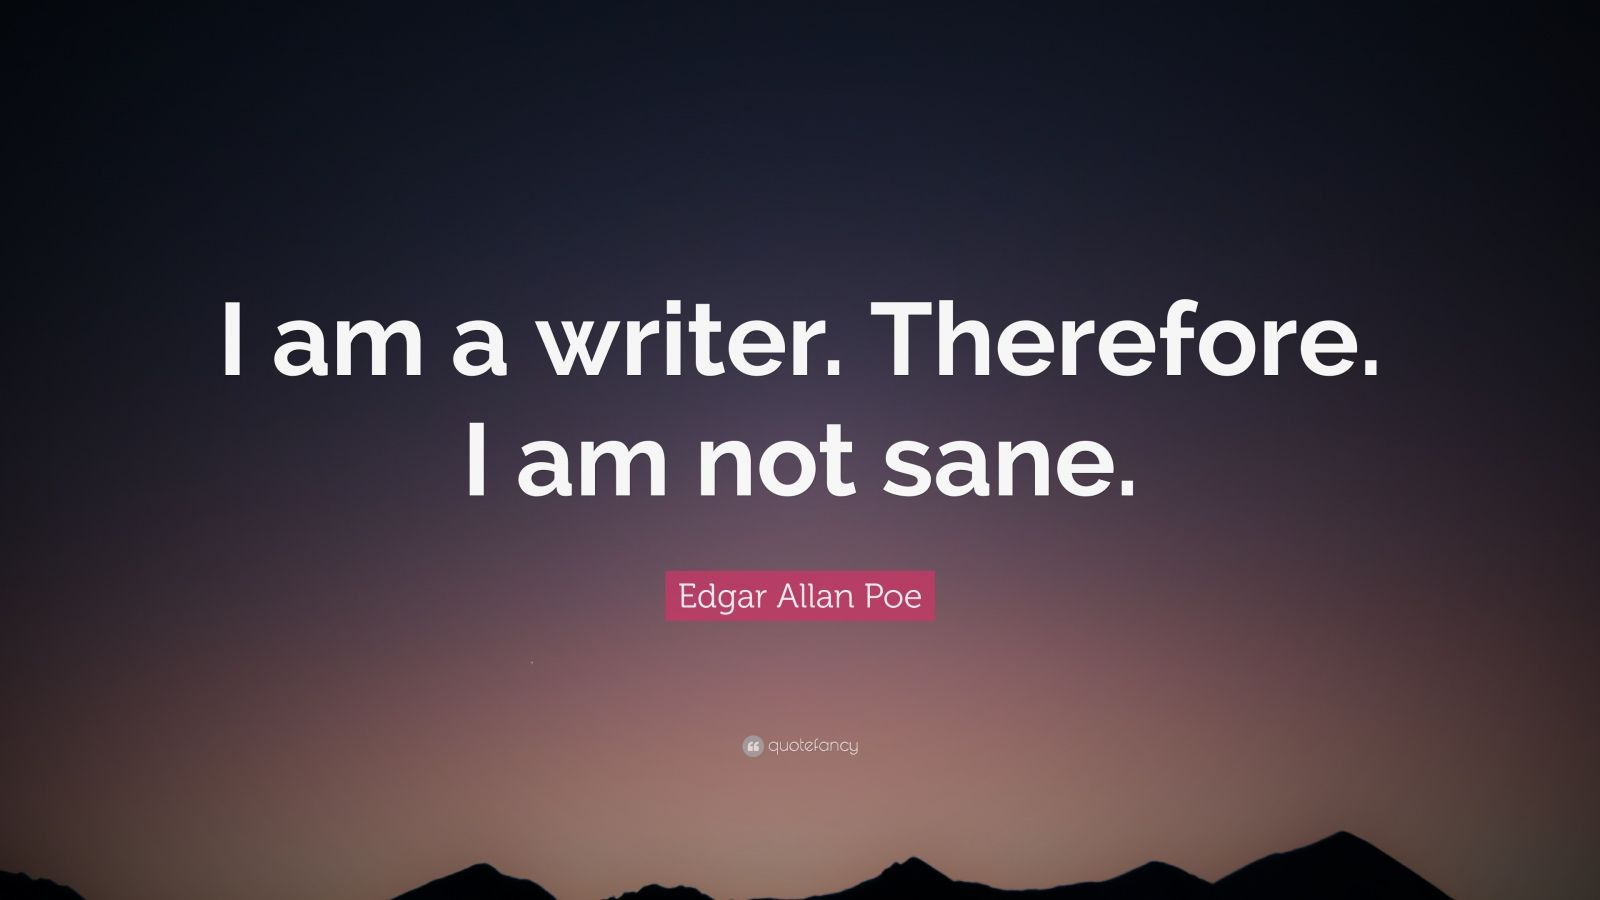 Dream Quotes Wallpaper Edgar Allan Poe Quote I Am A Writer Therefore I Am Not